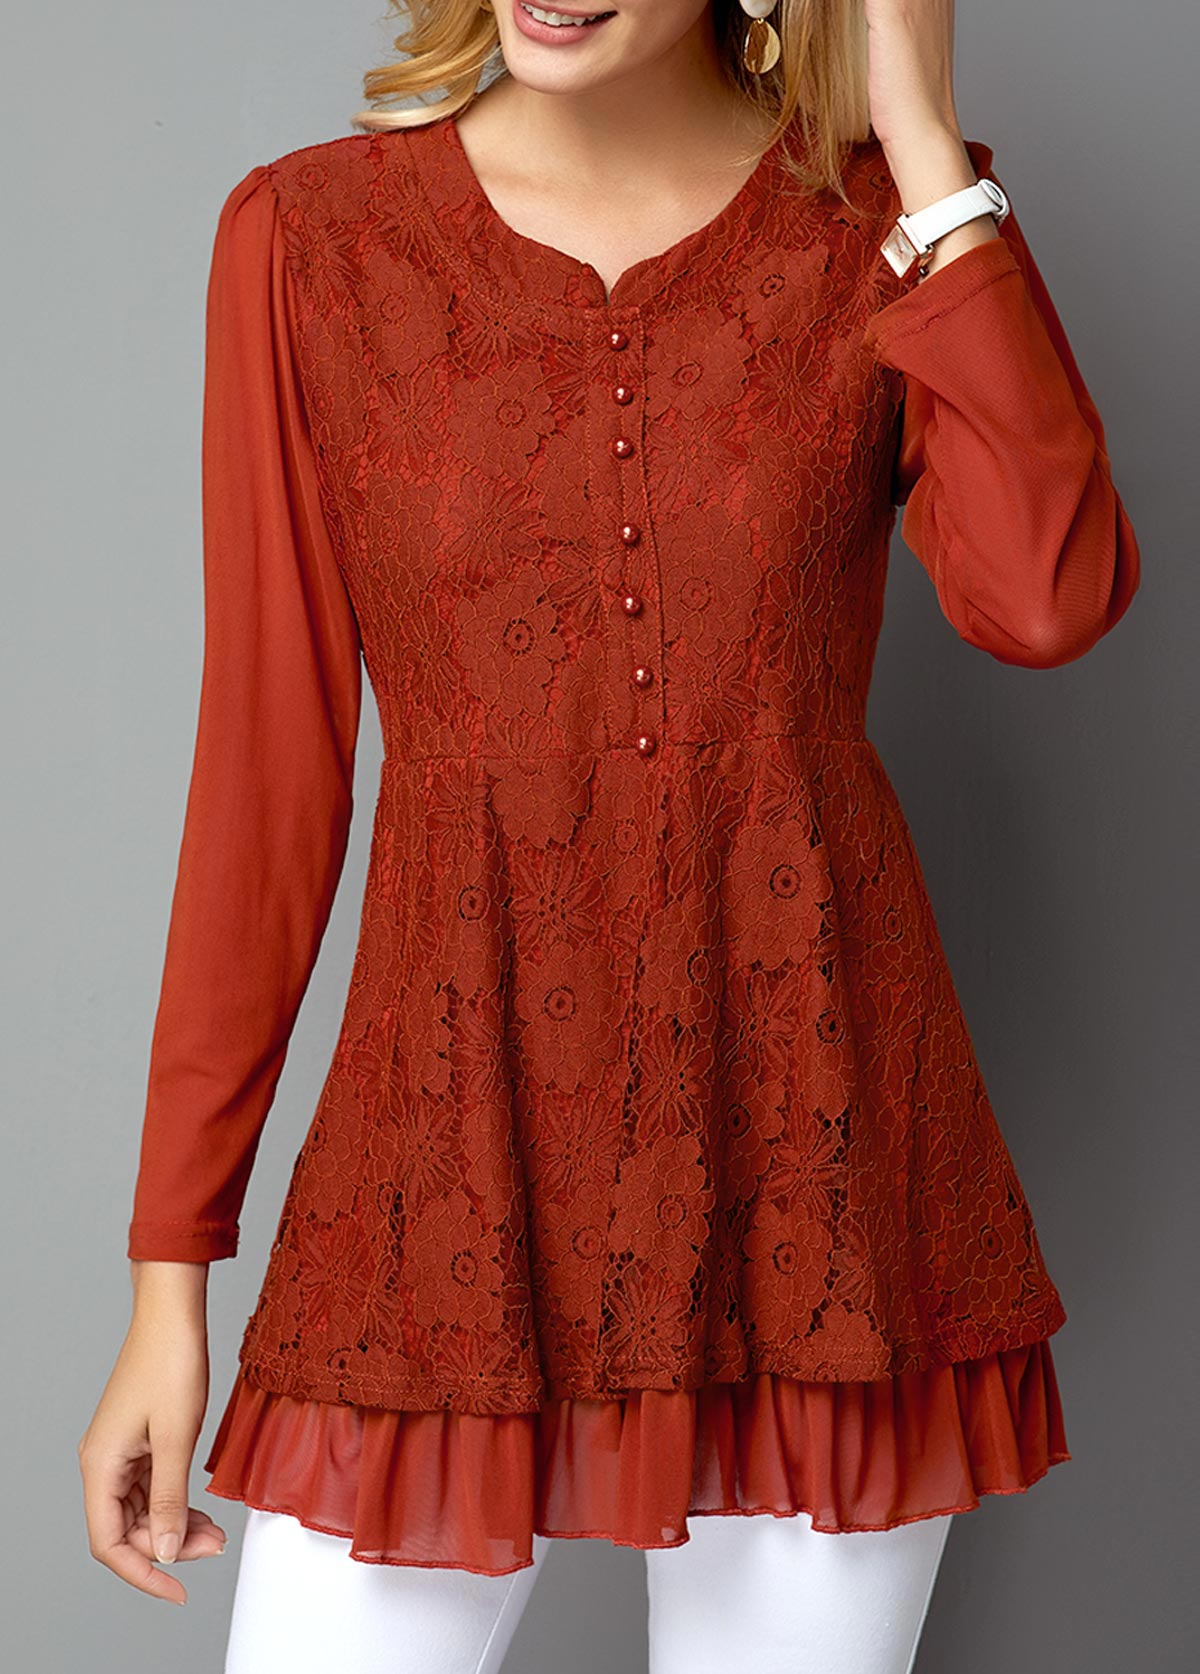 MODLILY DESIGNLong Sleeve Button Front Red Lace T Shirt